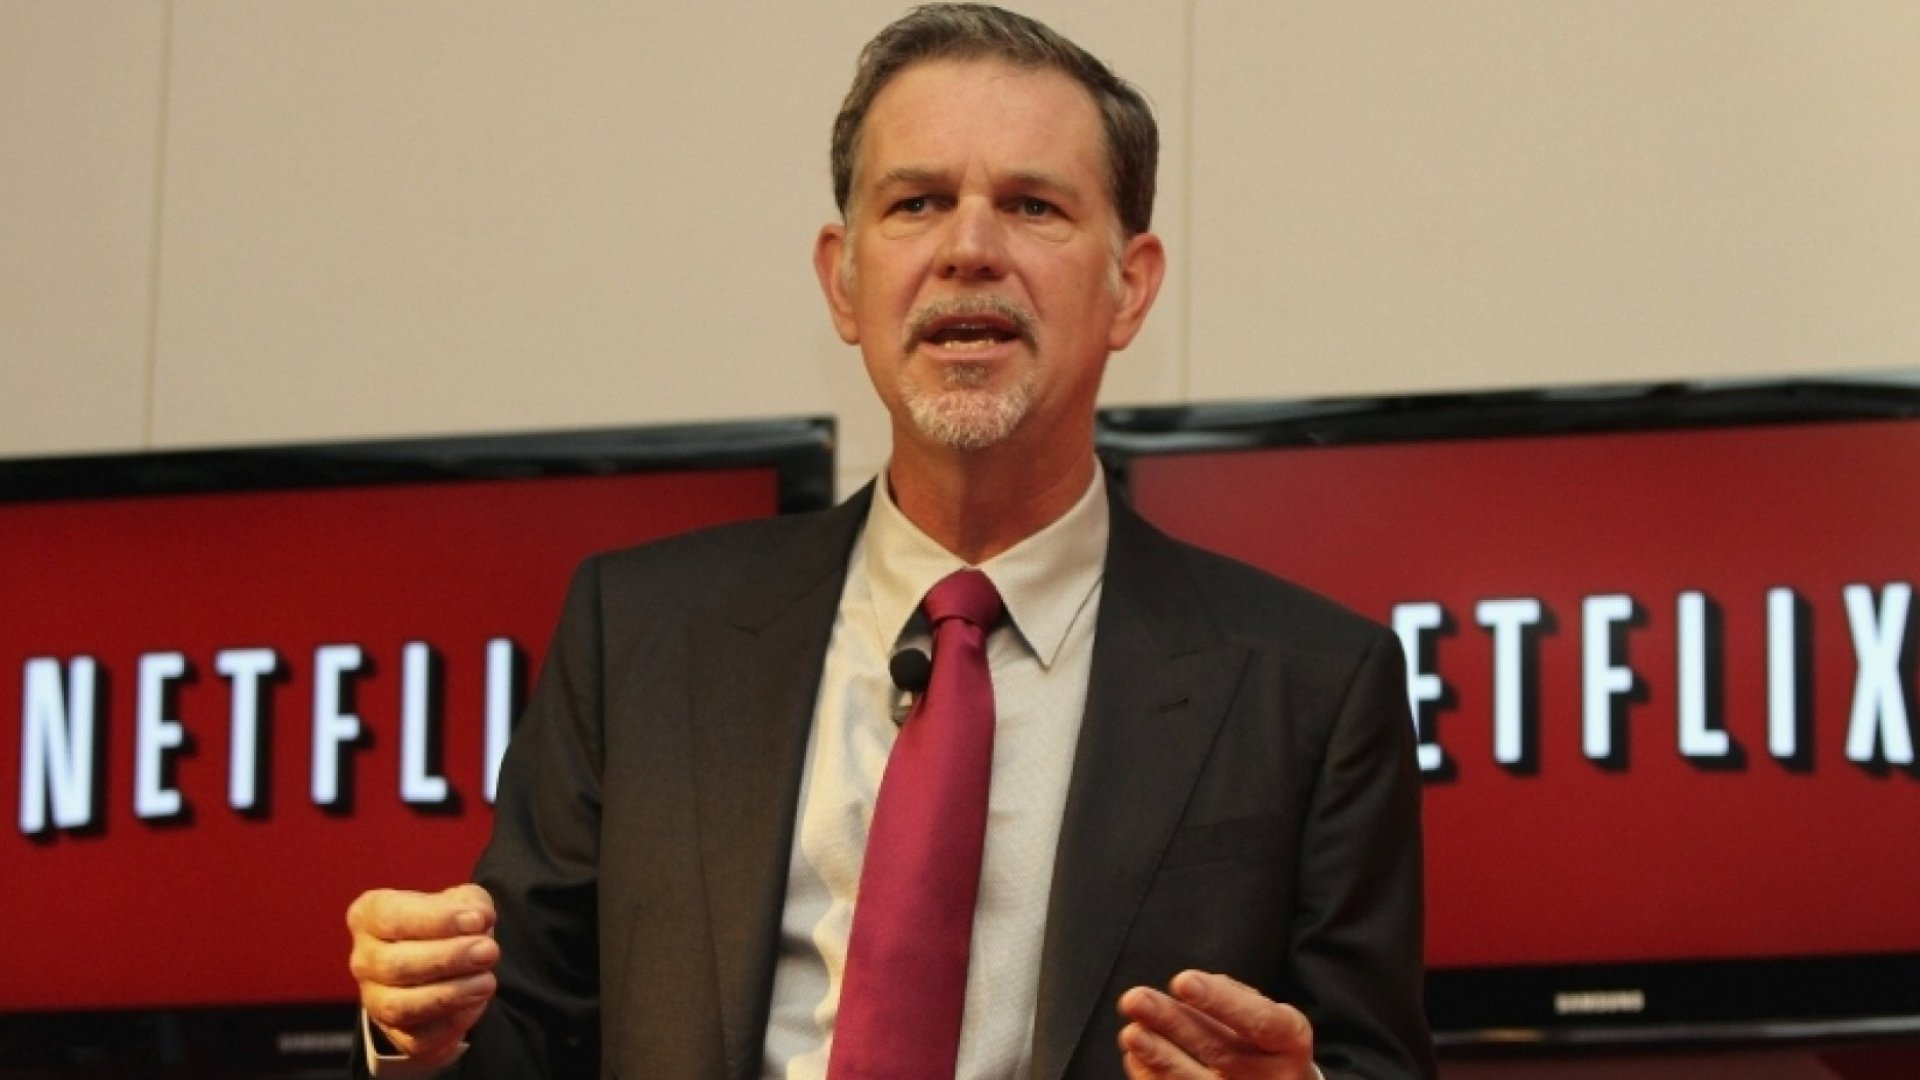 Netflix to Give Parents With Babies a Year of Paid Leave